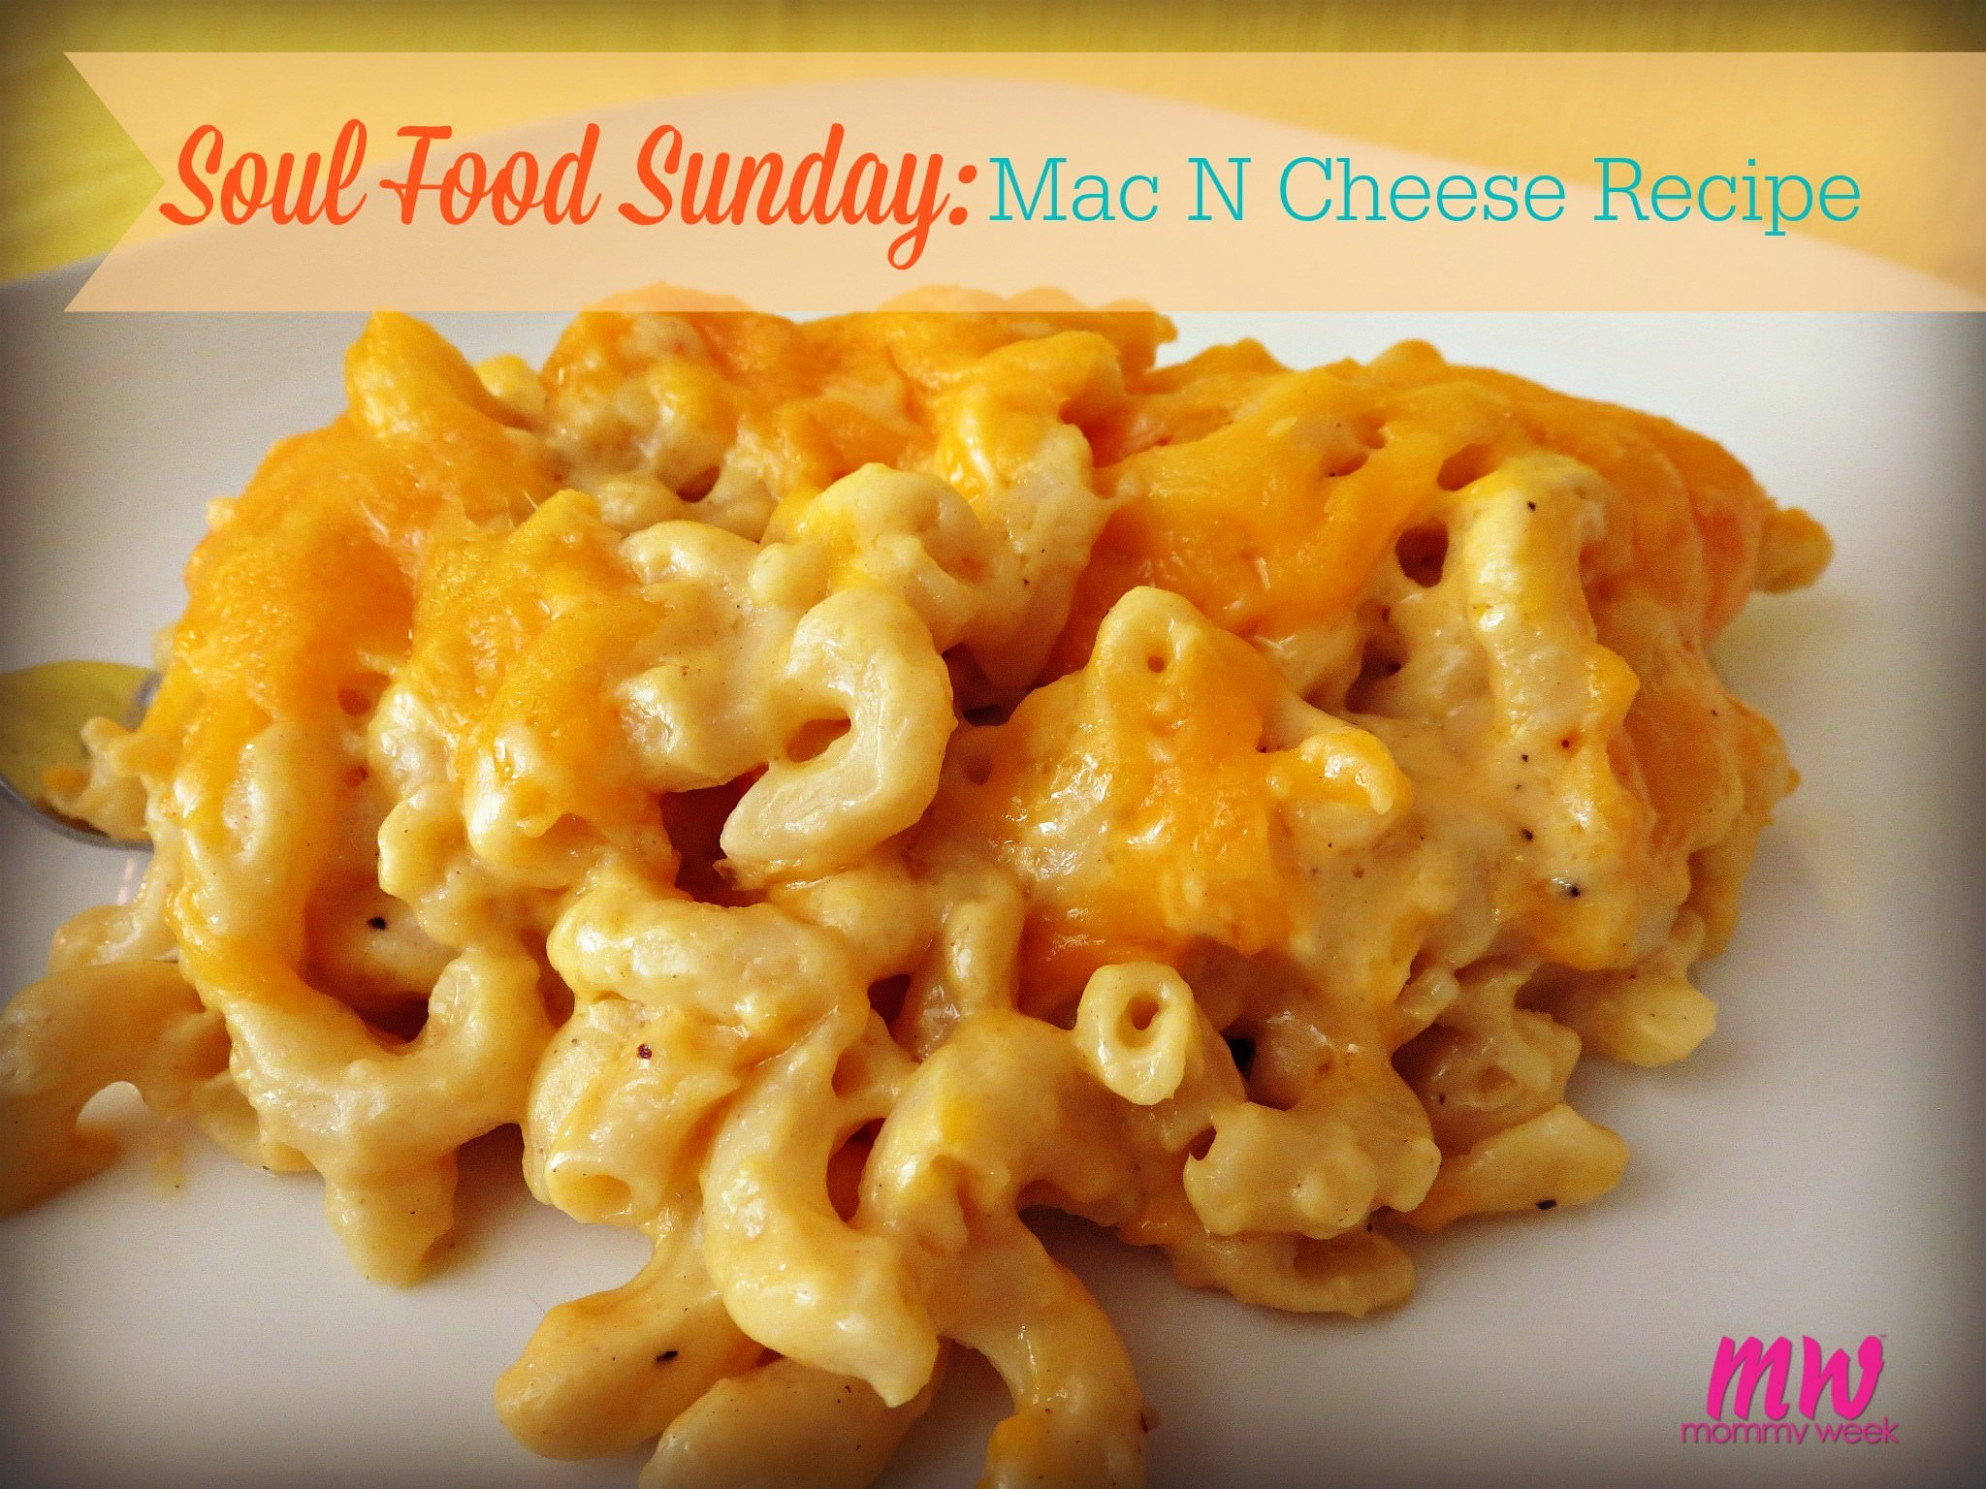 Sunday Soul Food Dinner Recipes - Recipes Ideas - soul food recipes